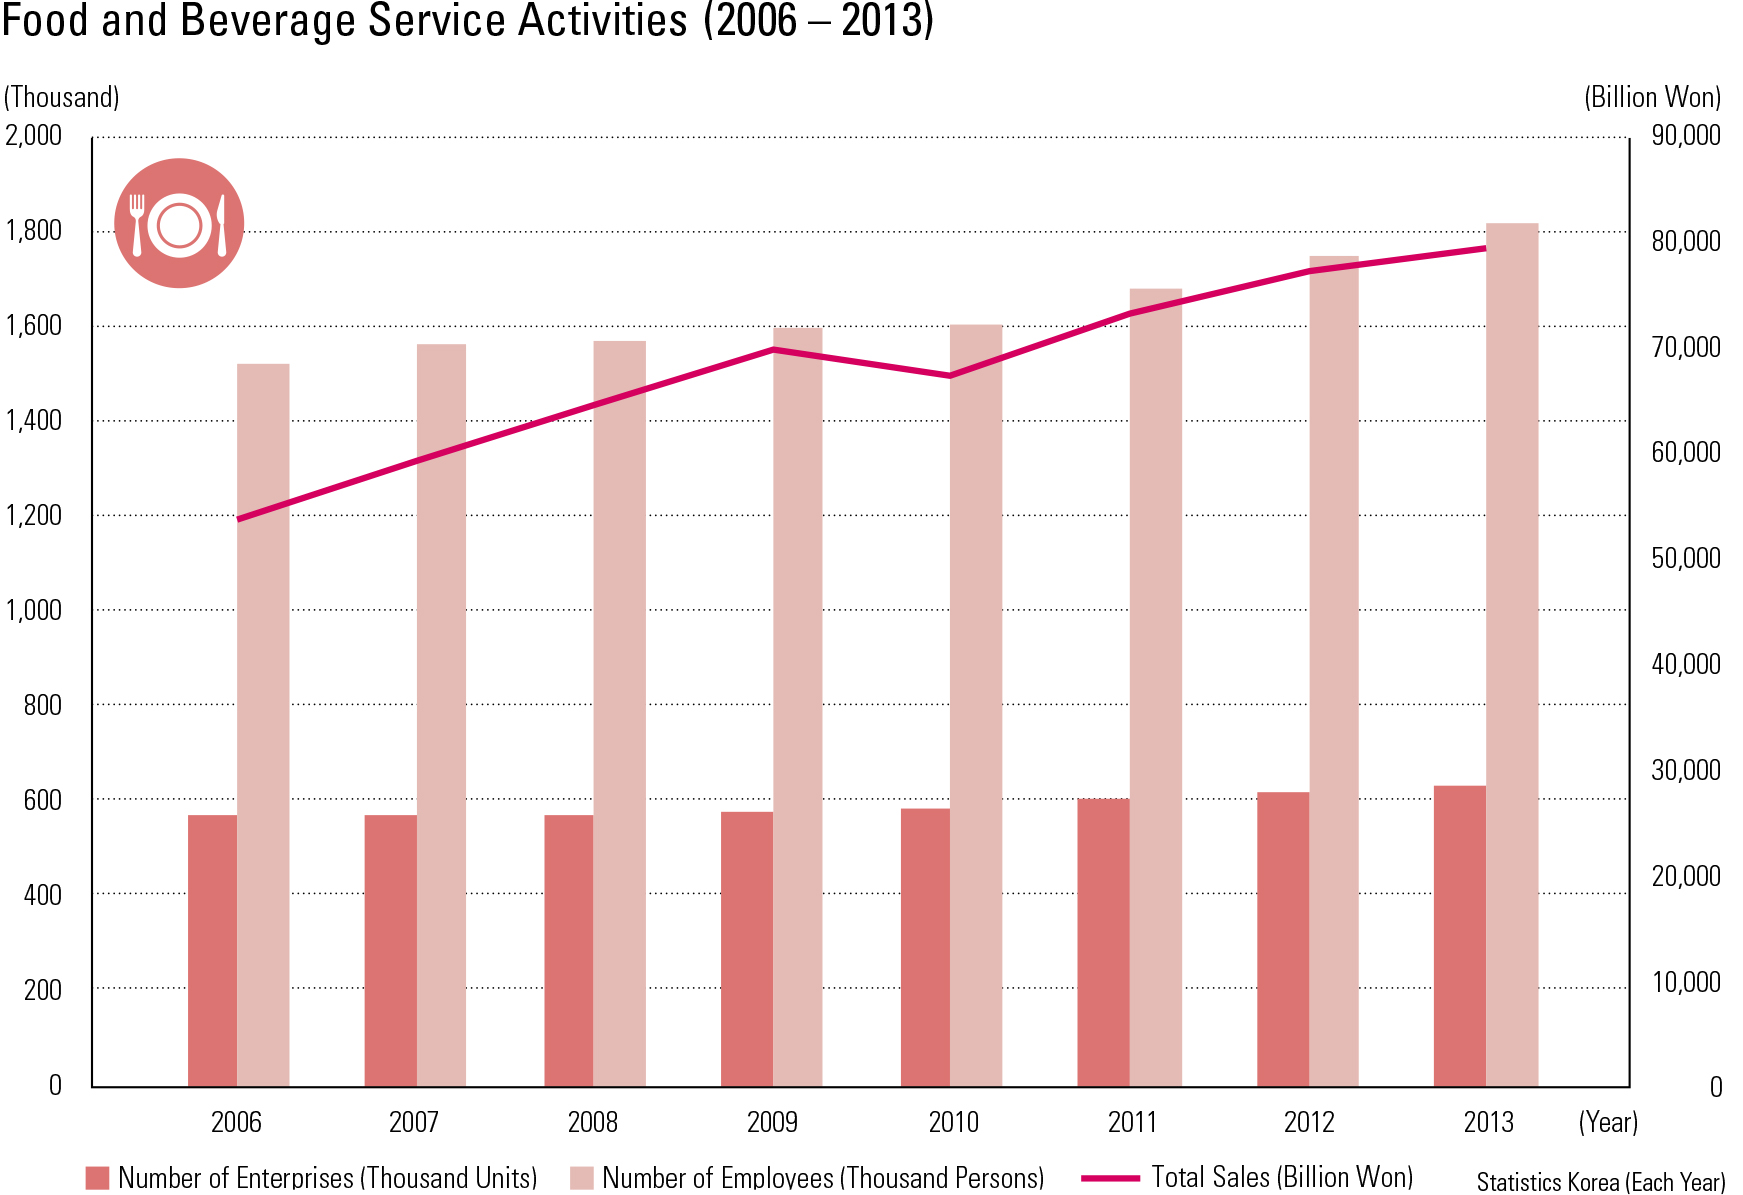 "Food and Beverage Service Activities (2006 – 2013)<p class=""oz_zoom"" zimg=""http://imagedata.cafe24.com/us_3/us3_186-3_2.jpg""><span style=""font-family:Nanum Myeongjo;""><span style=""font-size:18px;""><span class=""label label-danger"">UPDATE DATA</span></span></p>"